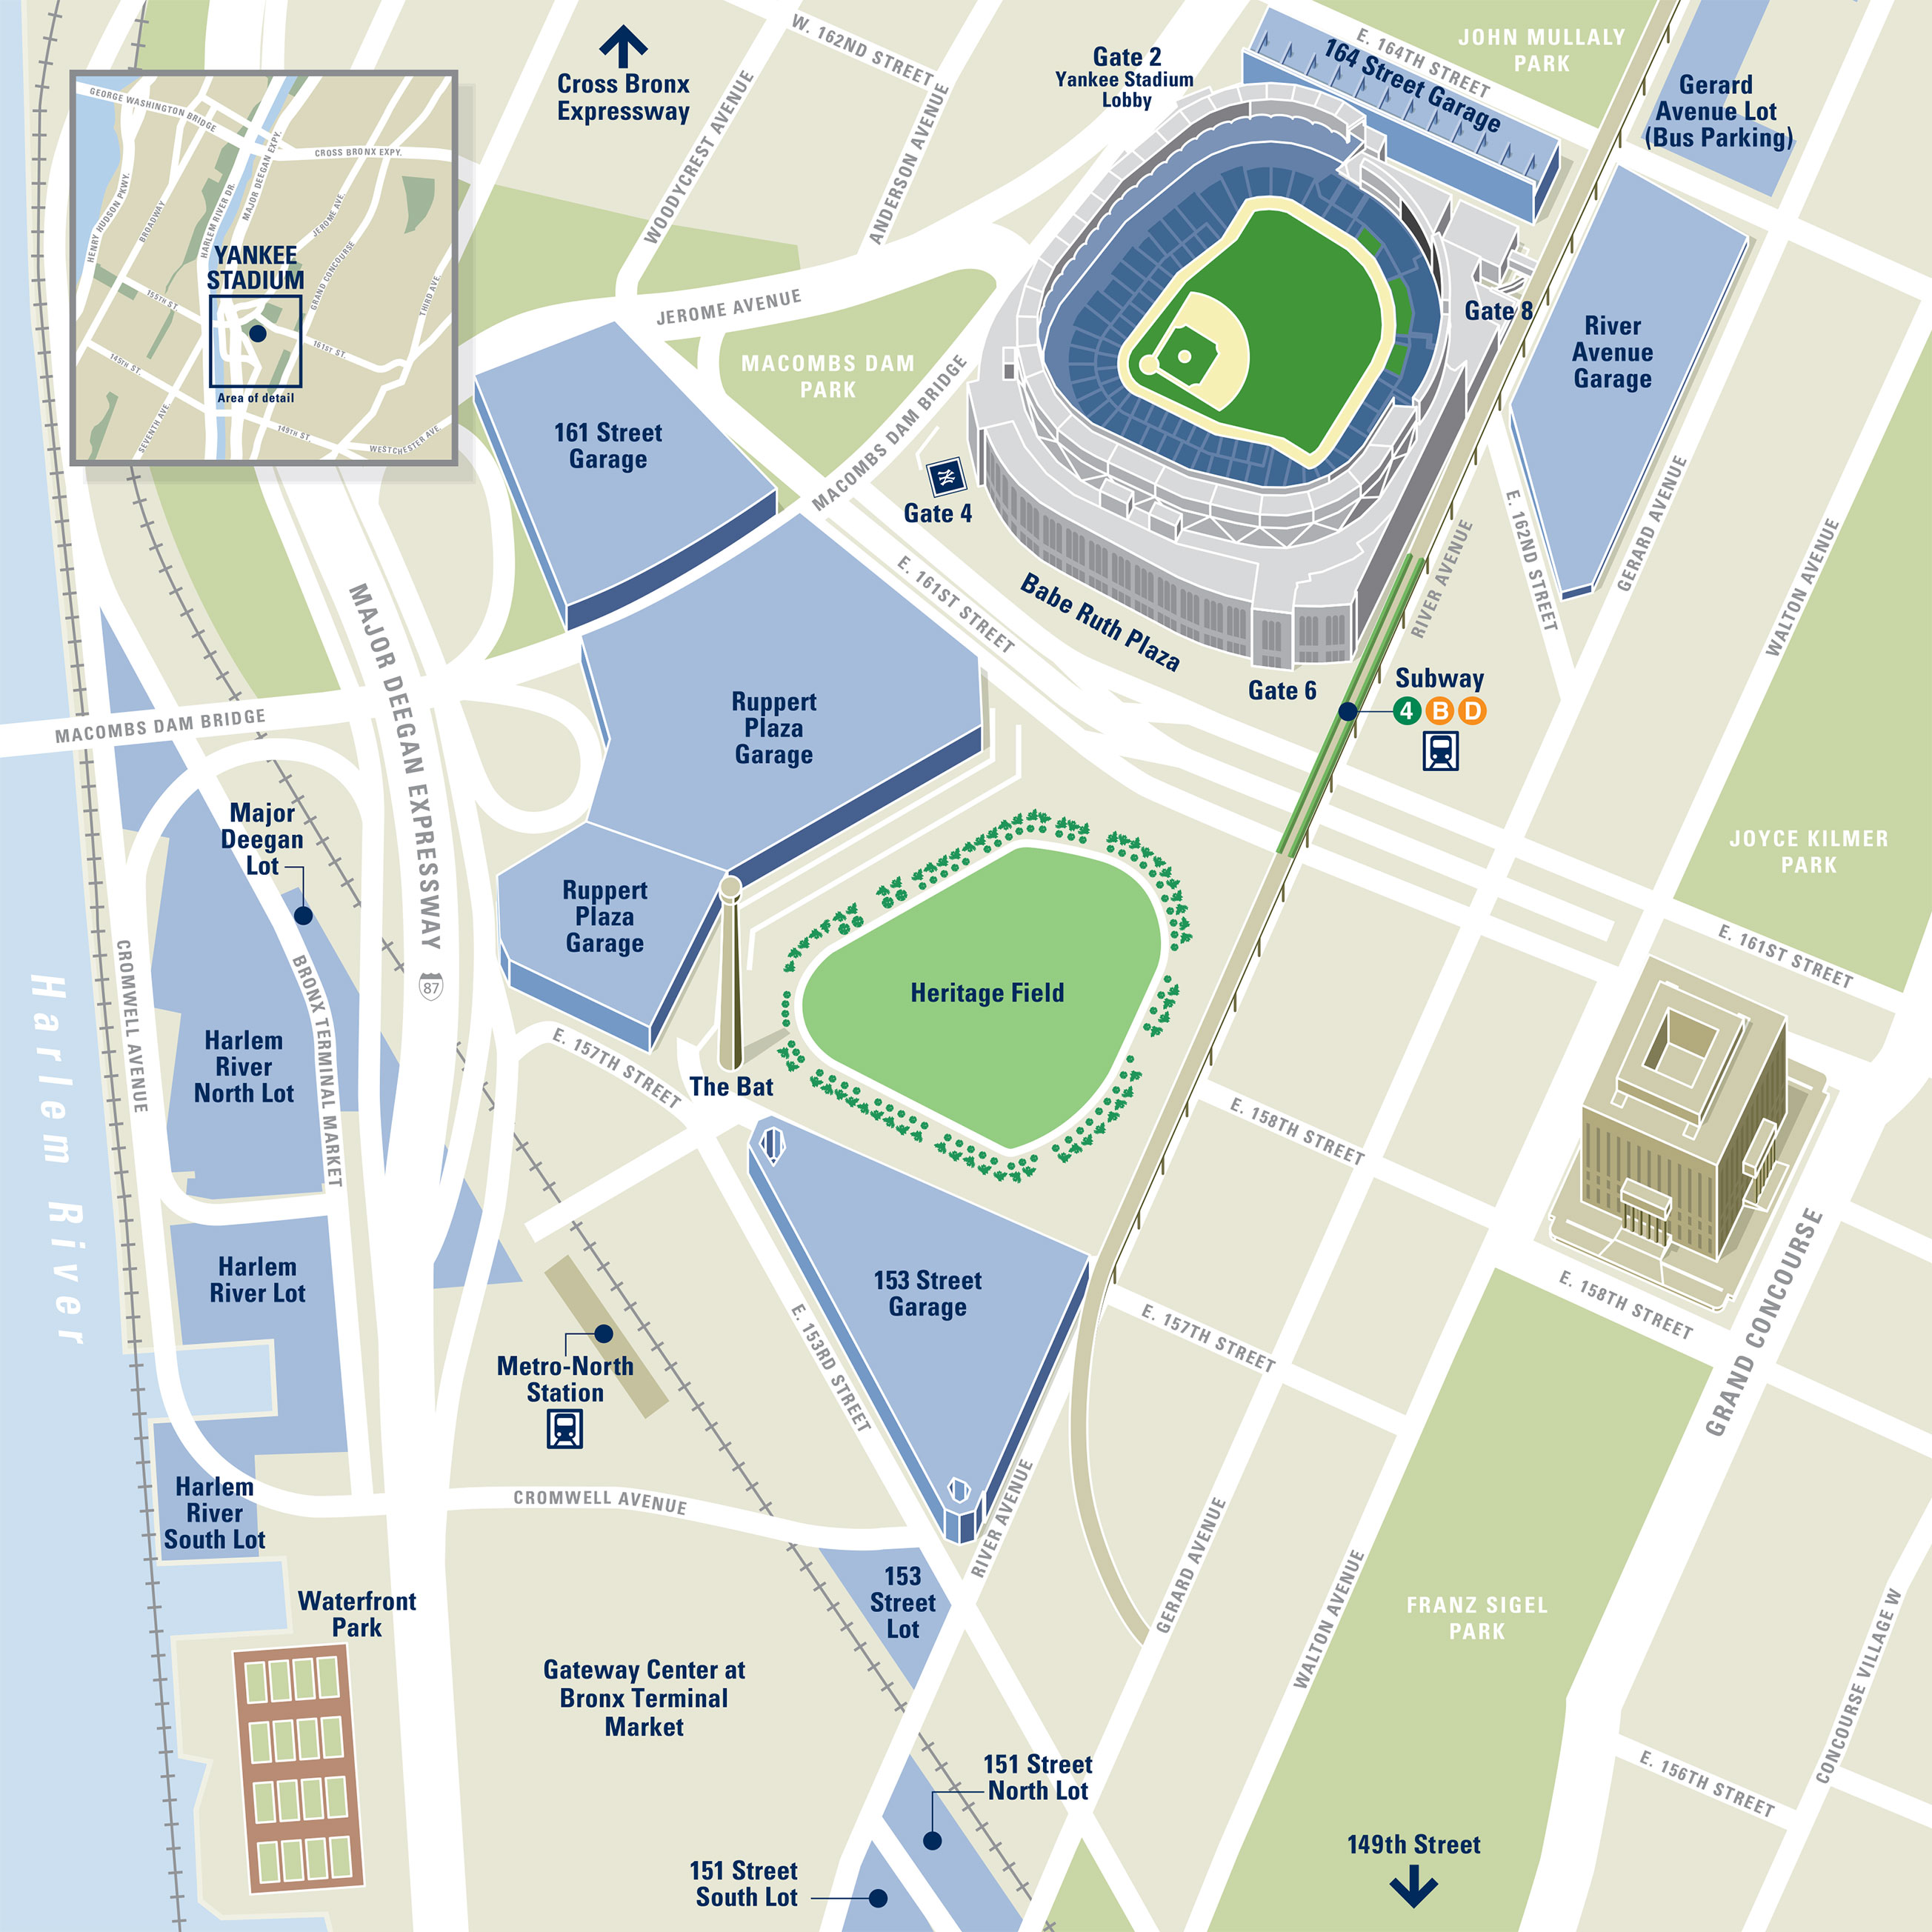 Map Of Rt 84 In New York.Yankee Stadium Directions And Parking Info New York Yankees